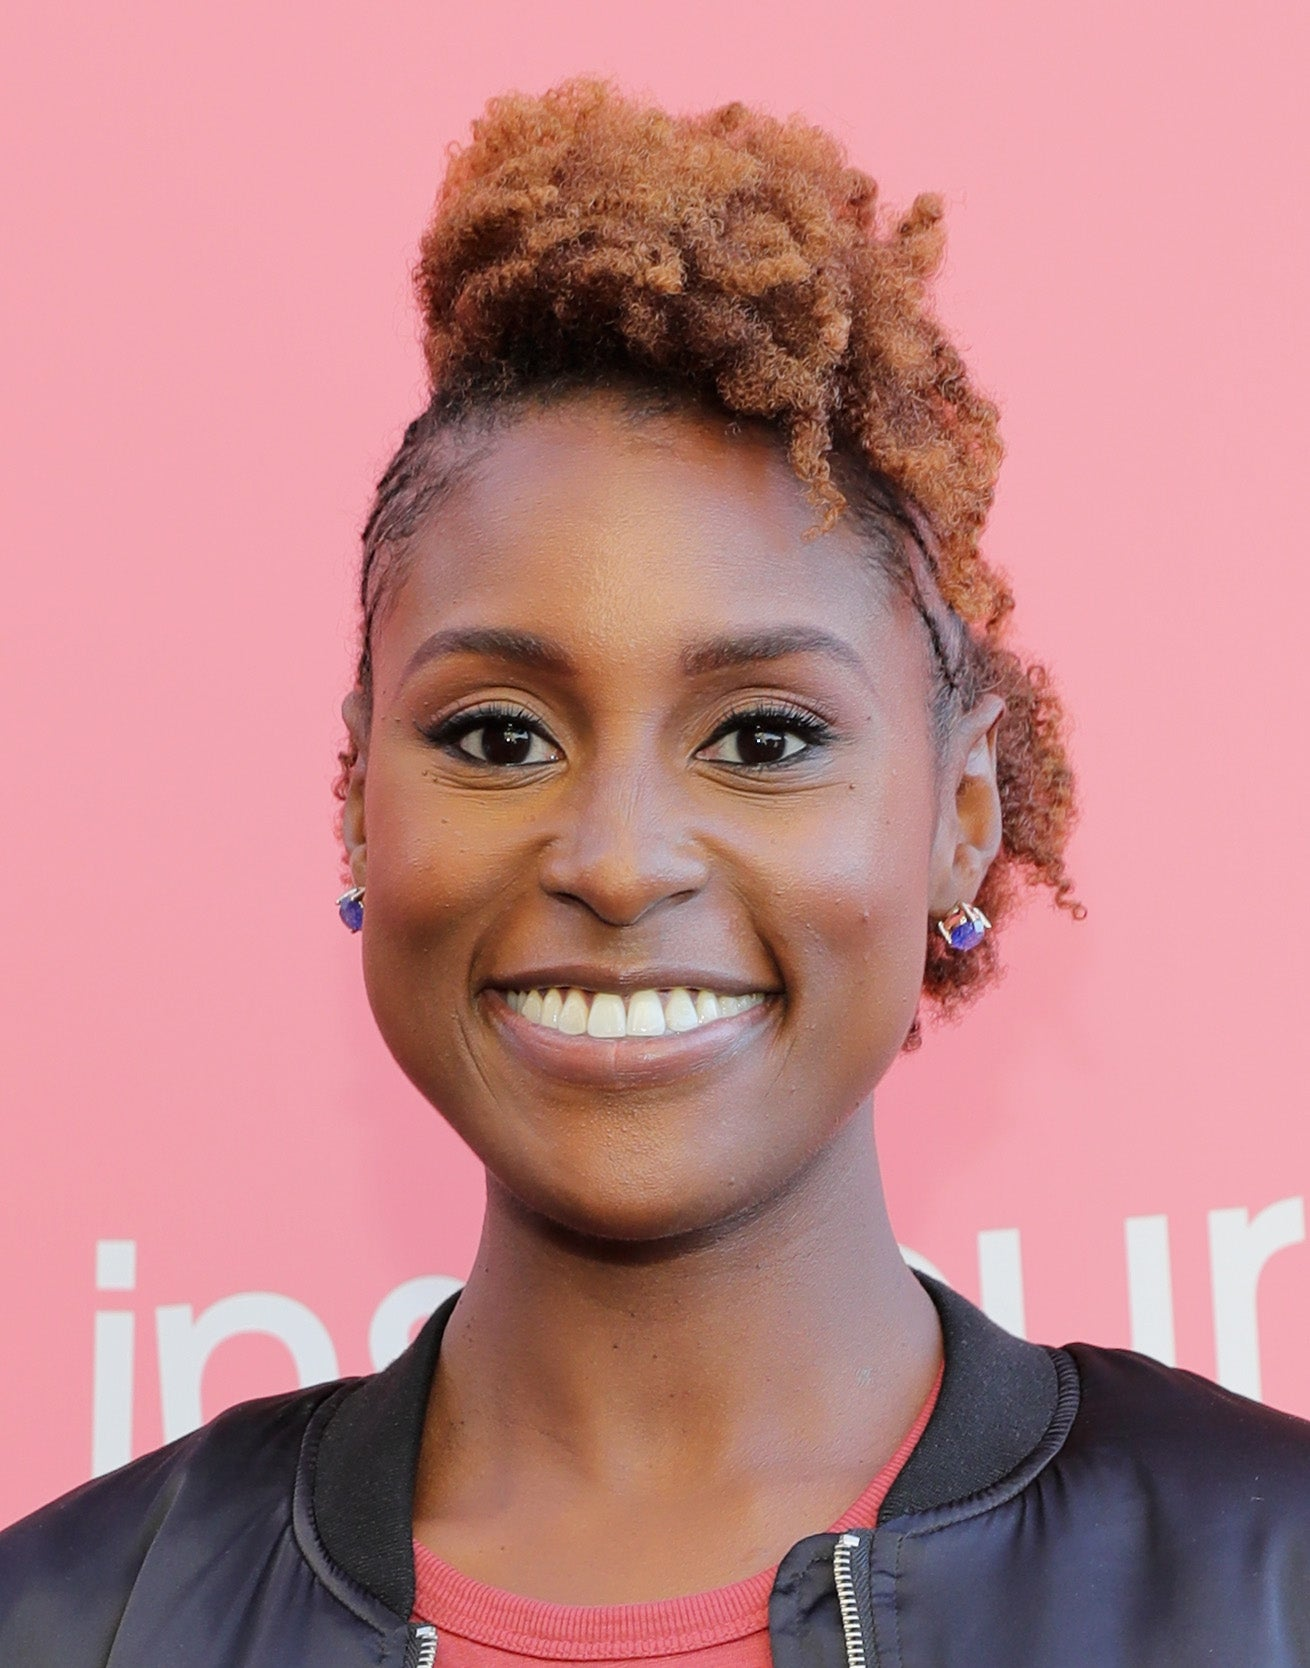 Issa Rae Says Shaving Her Head Was The Most 'Freeing Thing' She's Ever Done